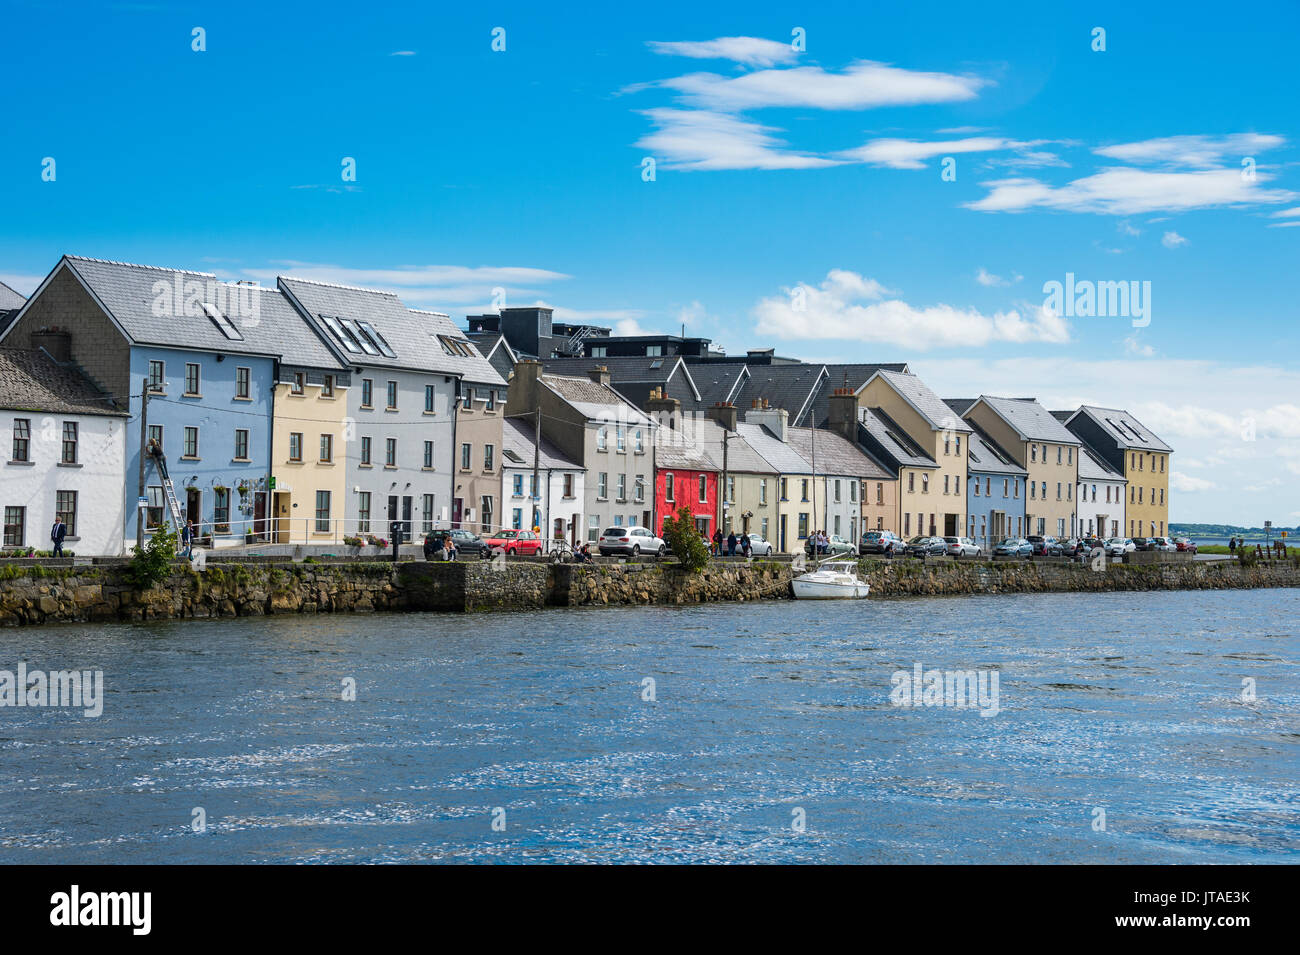 The long walk picturesque walkway, Galway, Connacht, Republic of Ireland, Europe - Stock Image